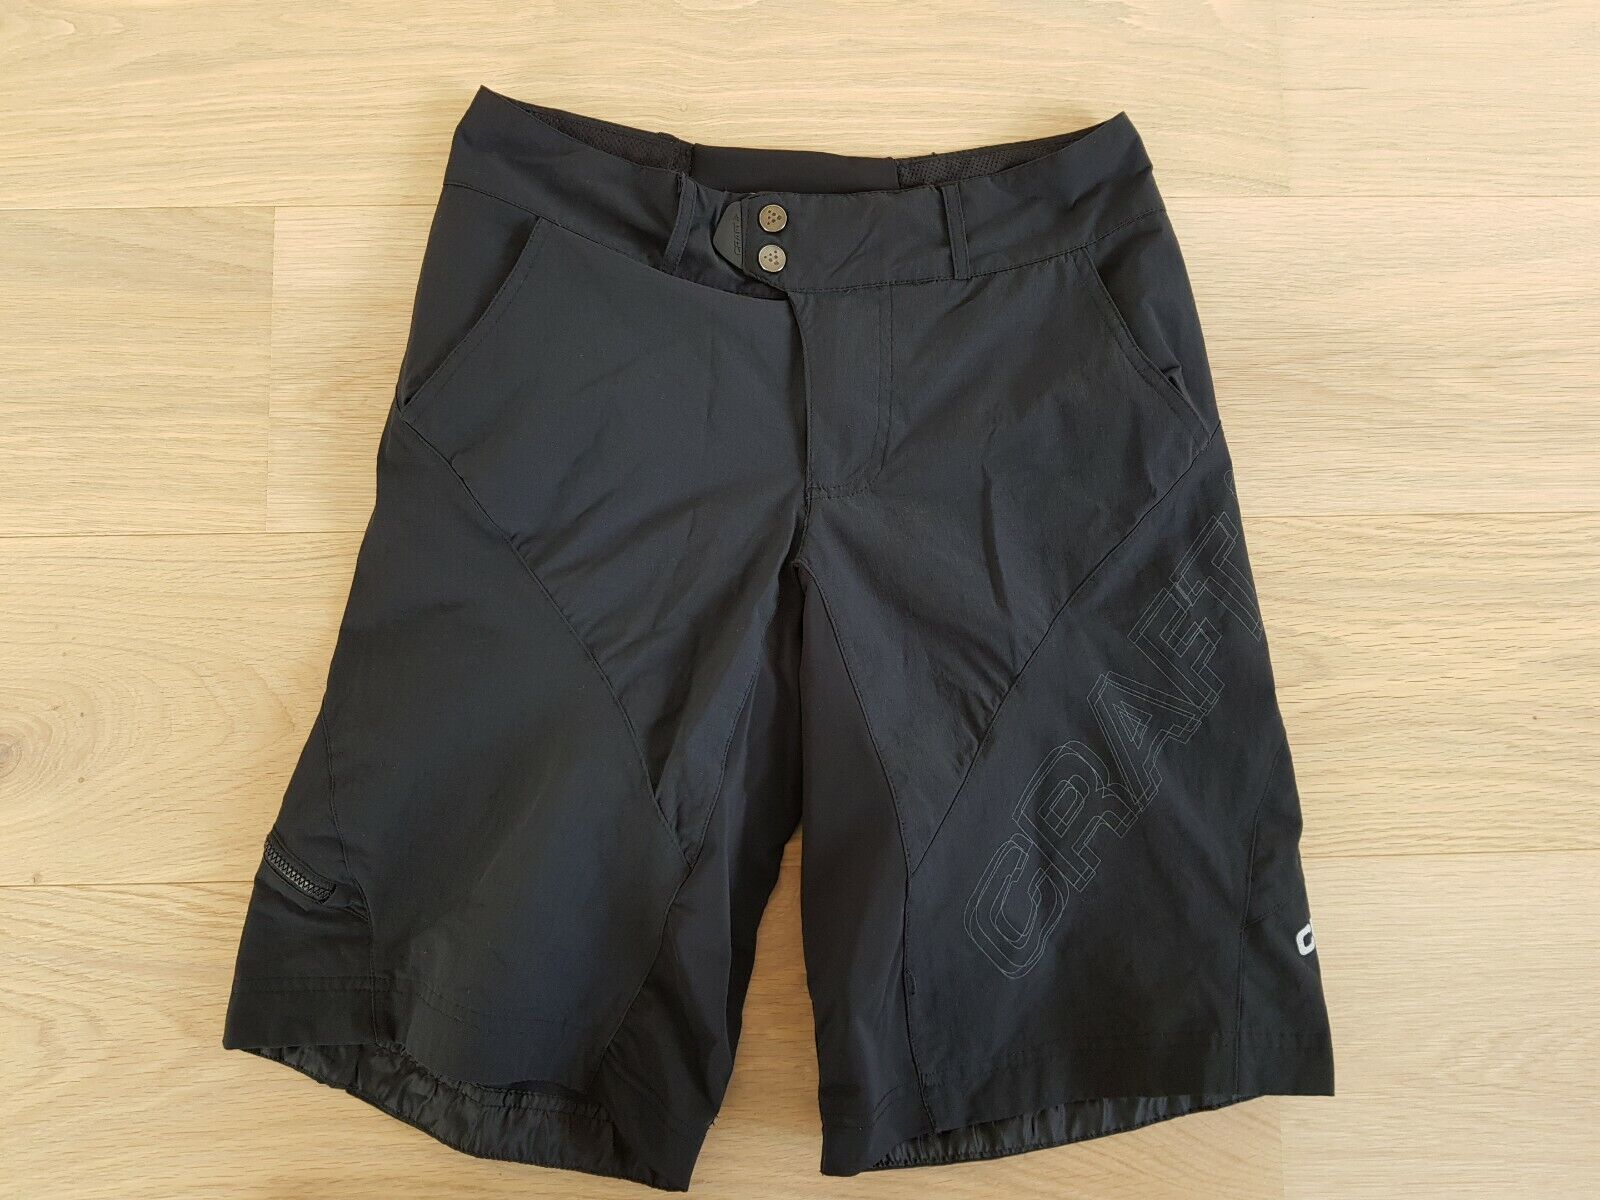 Craft MTB Cycling Shorts Trail trousers Trekking Hiking PANTS Dimensione S